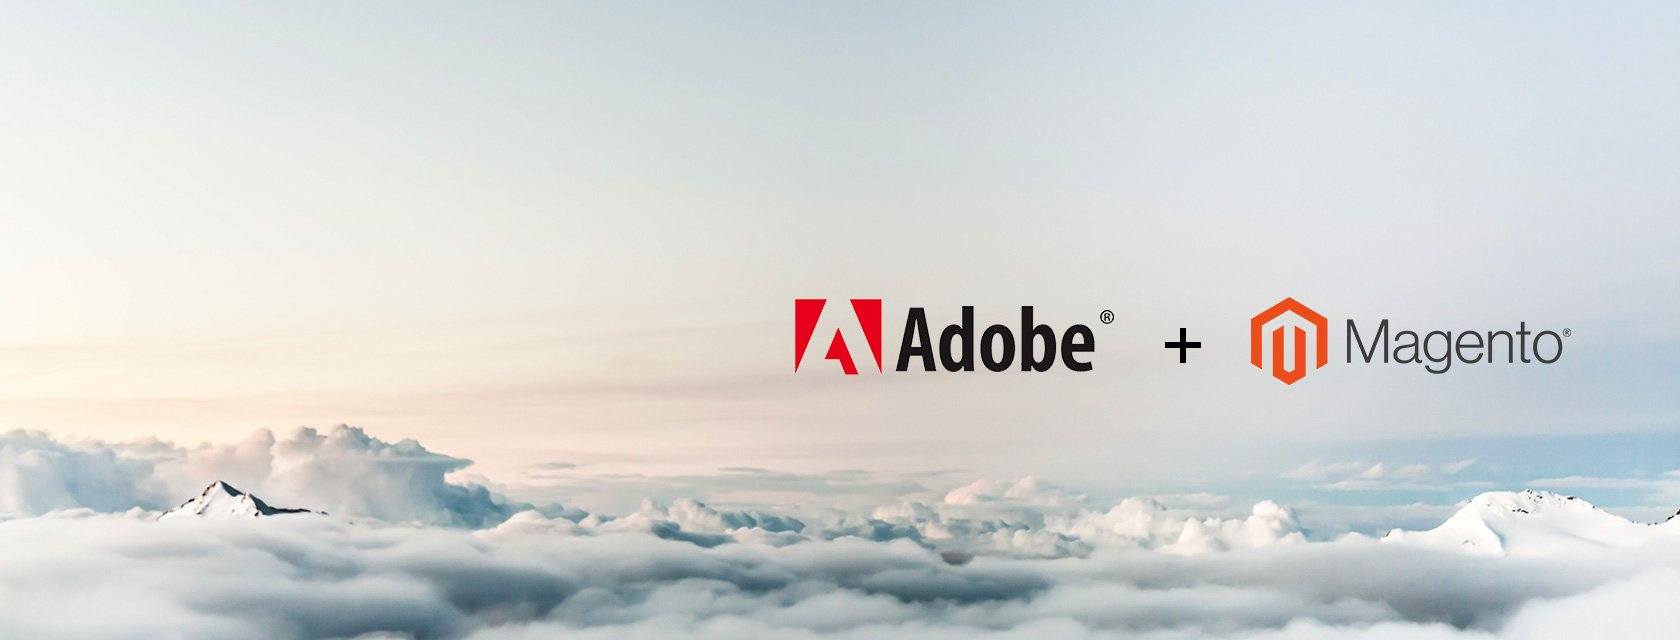 Adobe's acquisition of Magento – What could happen next?